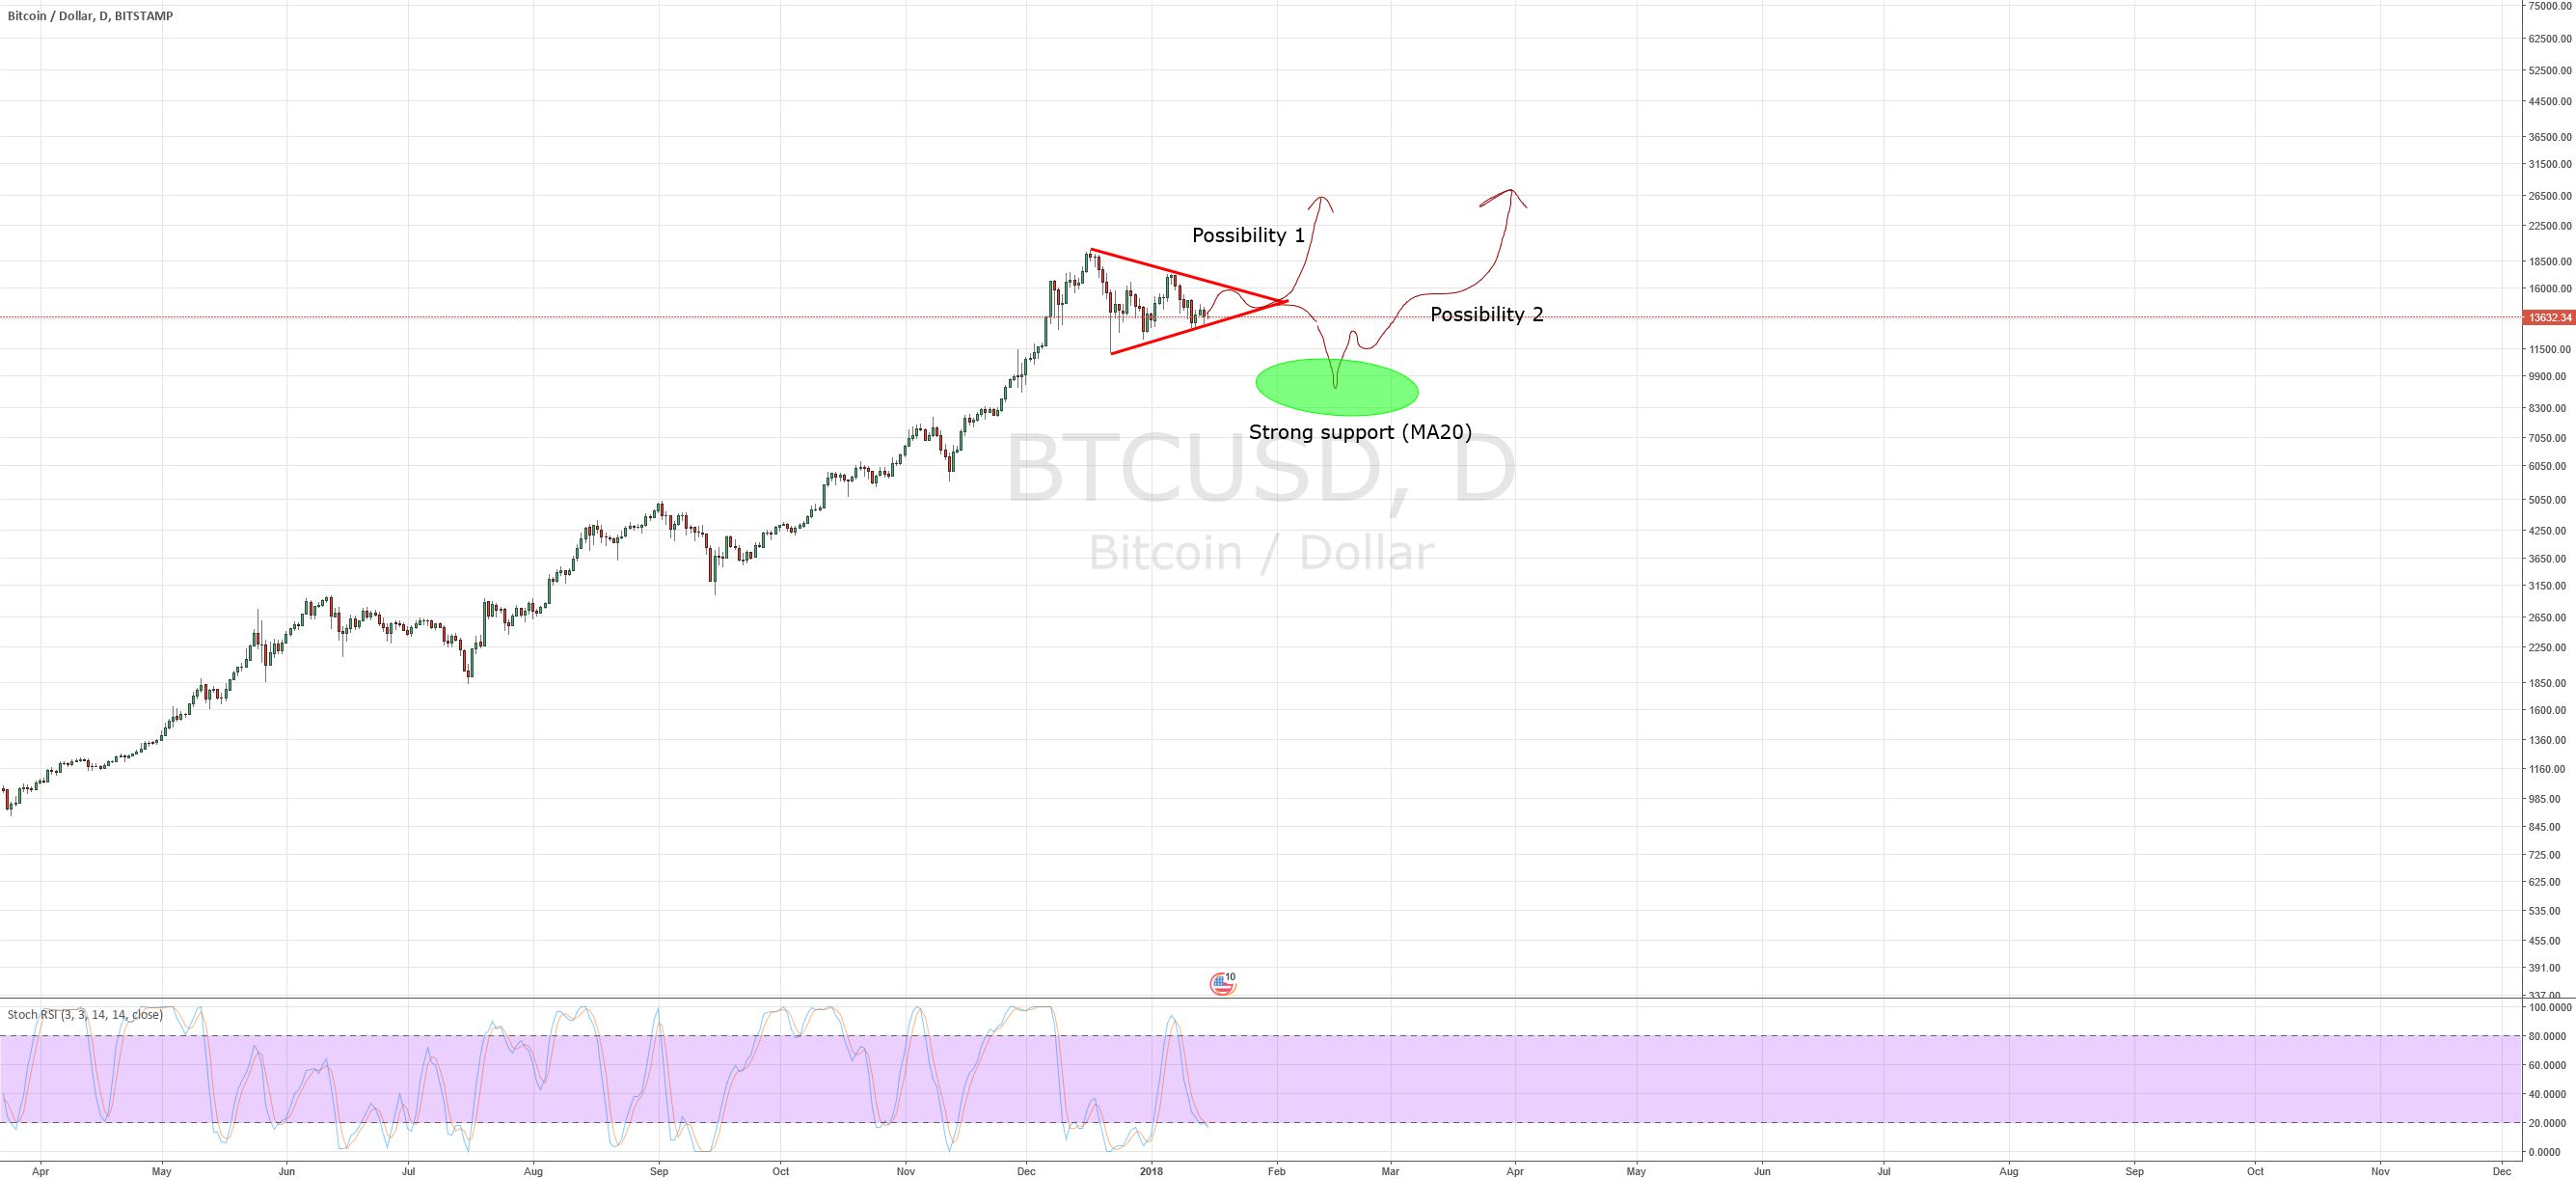 Two possible scenarios for BTC